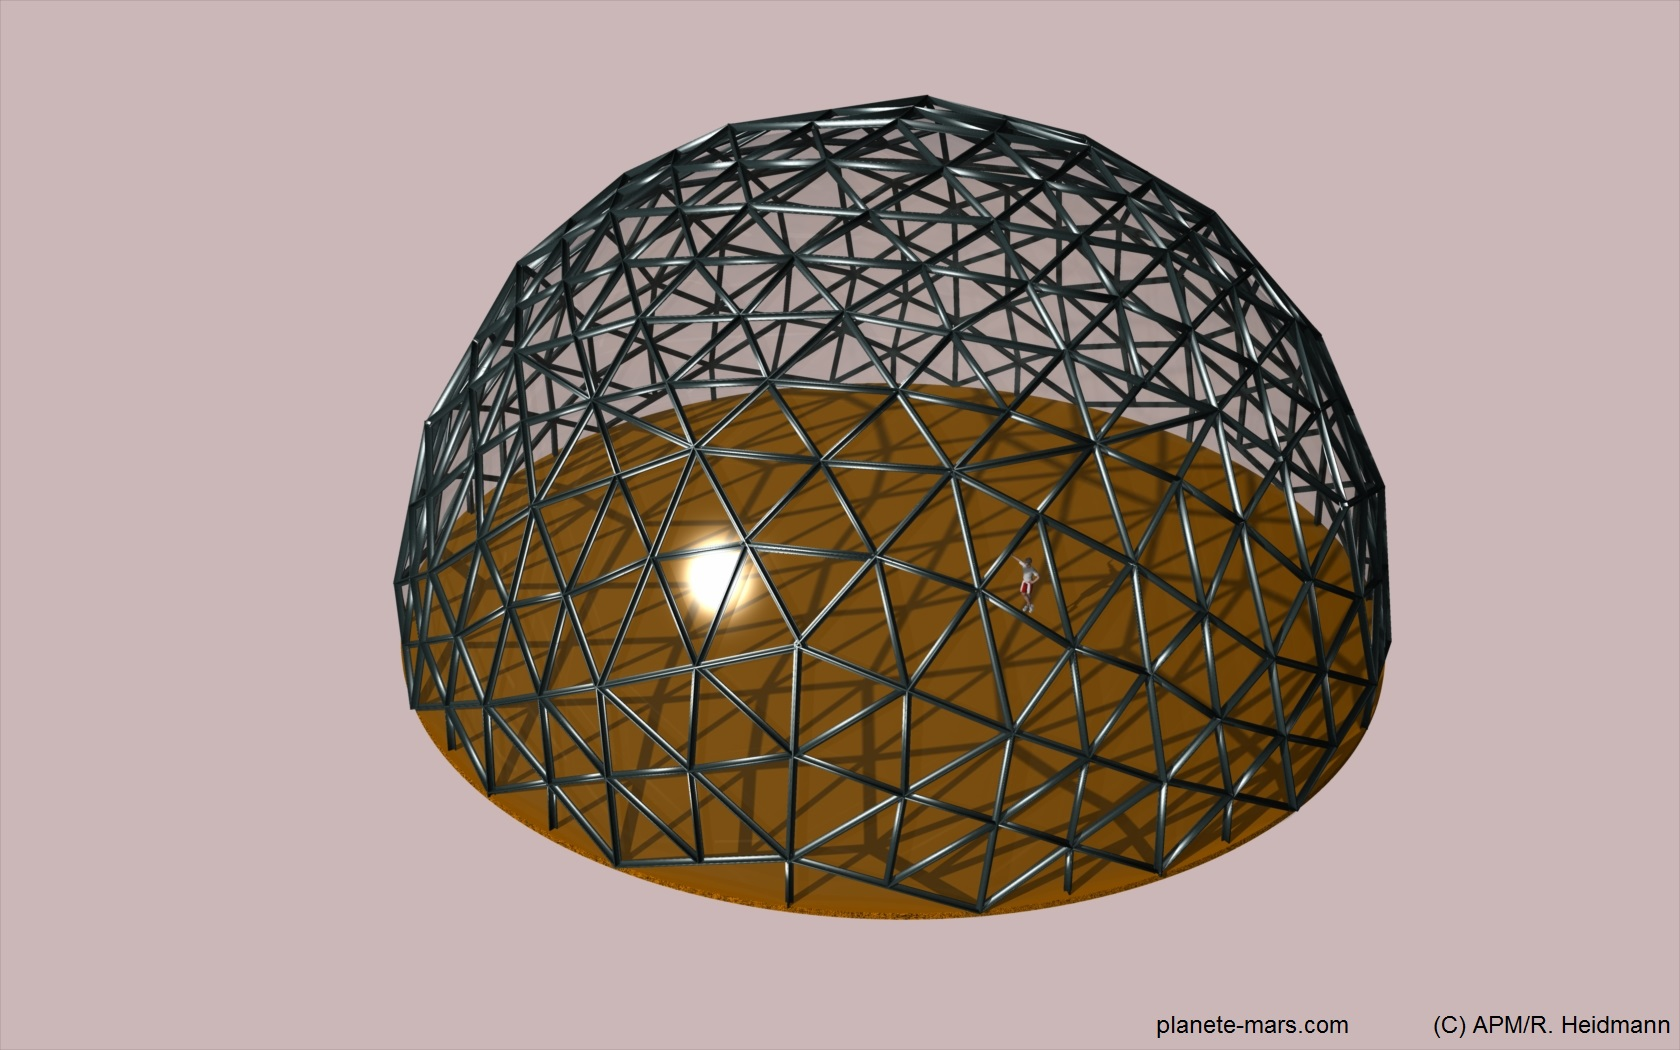 Geodesic dome, 30m diameter, flat glass panes and steel structure, erected on foundations in reinforced duricrete.